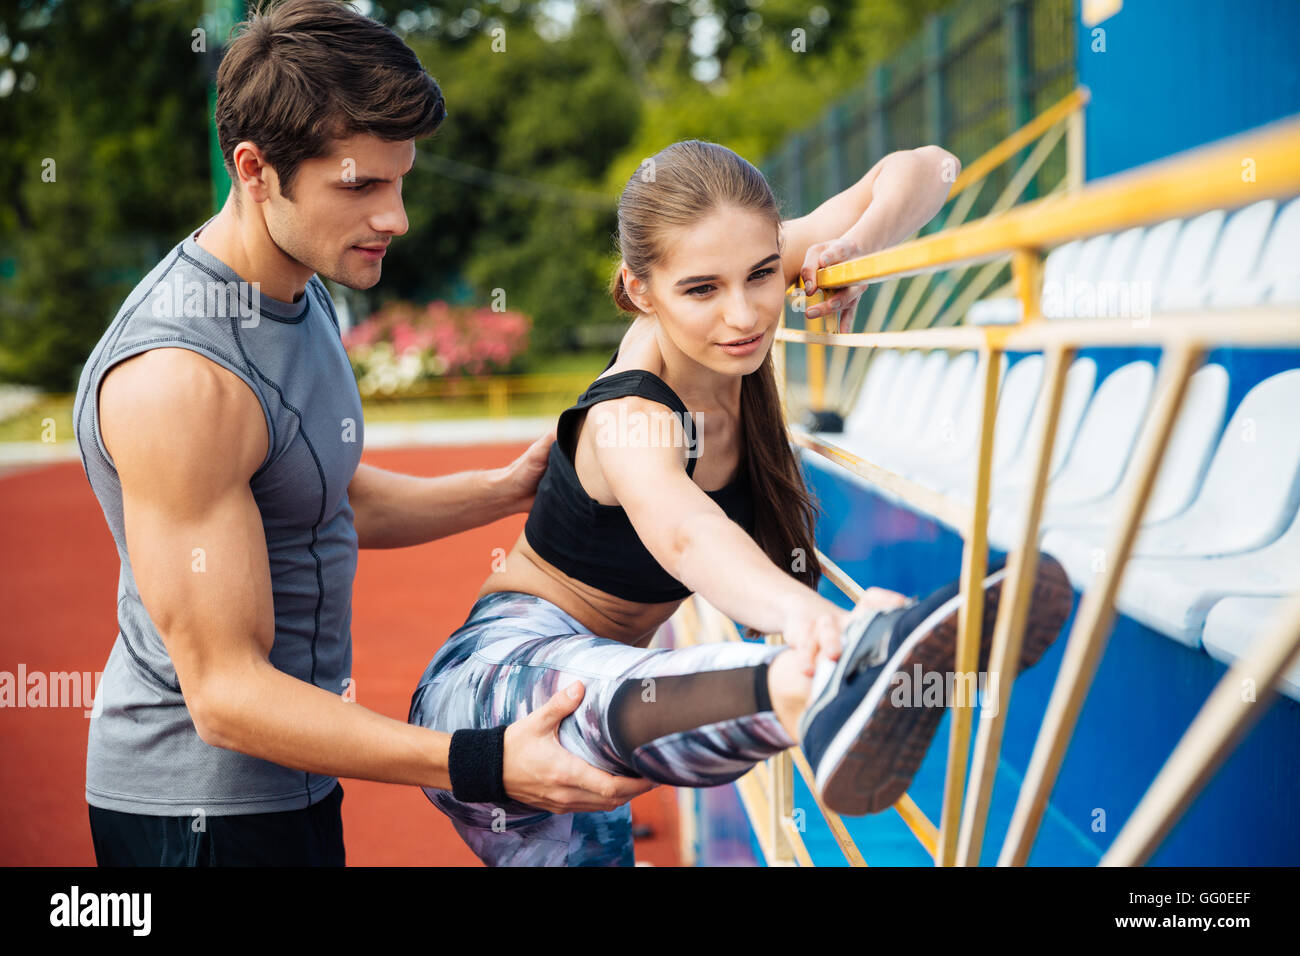 Cute young woman athlete working out with personal trainer on stadium - Stock Image